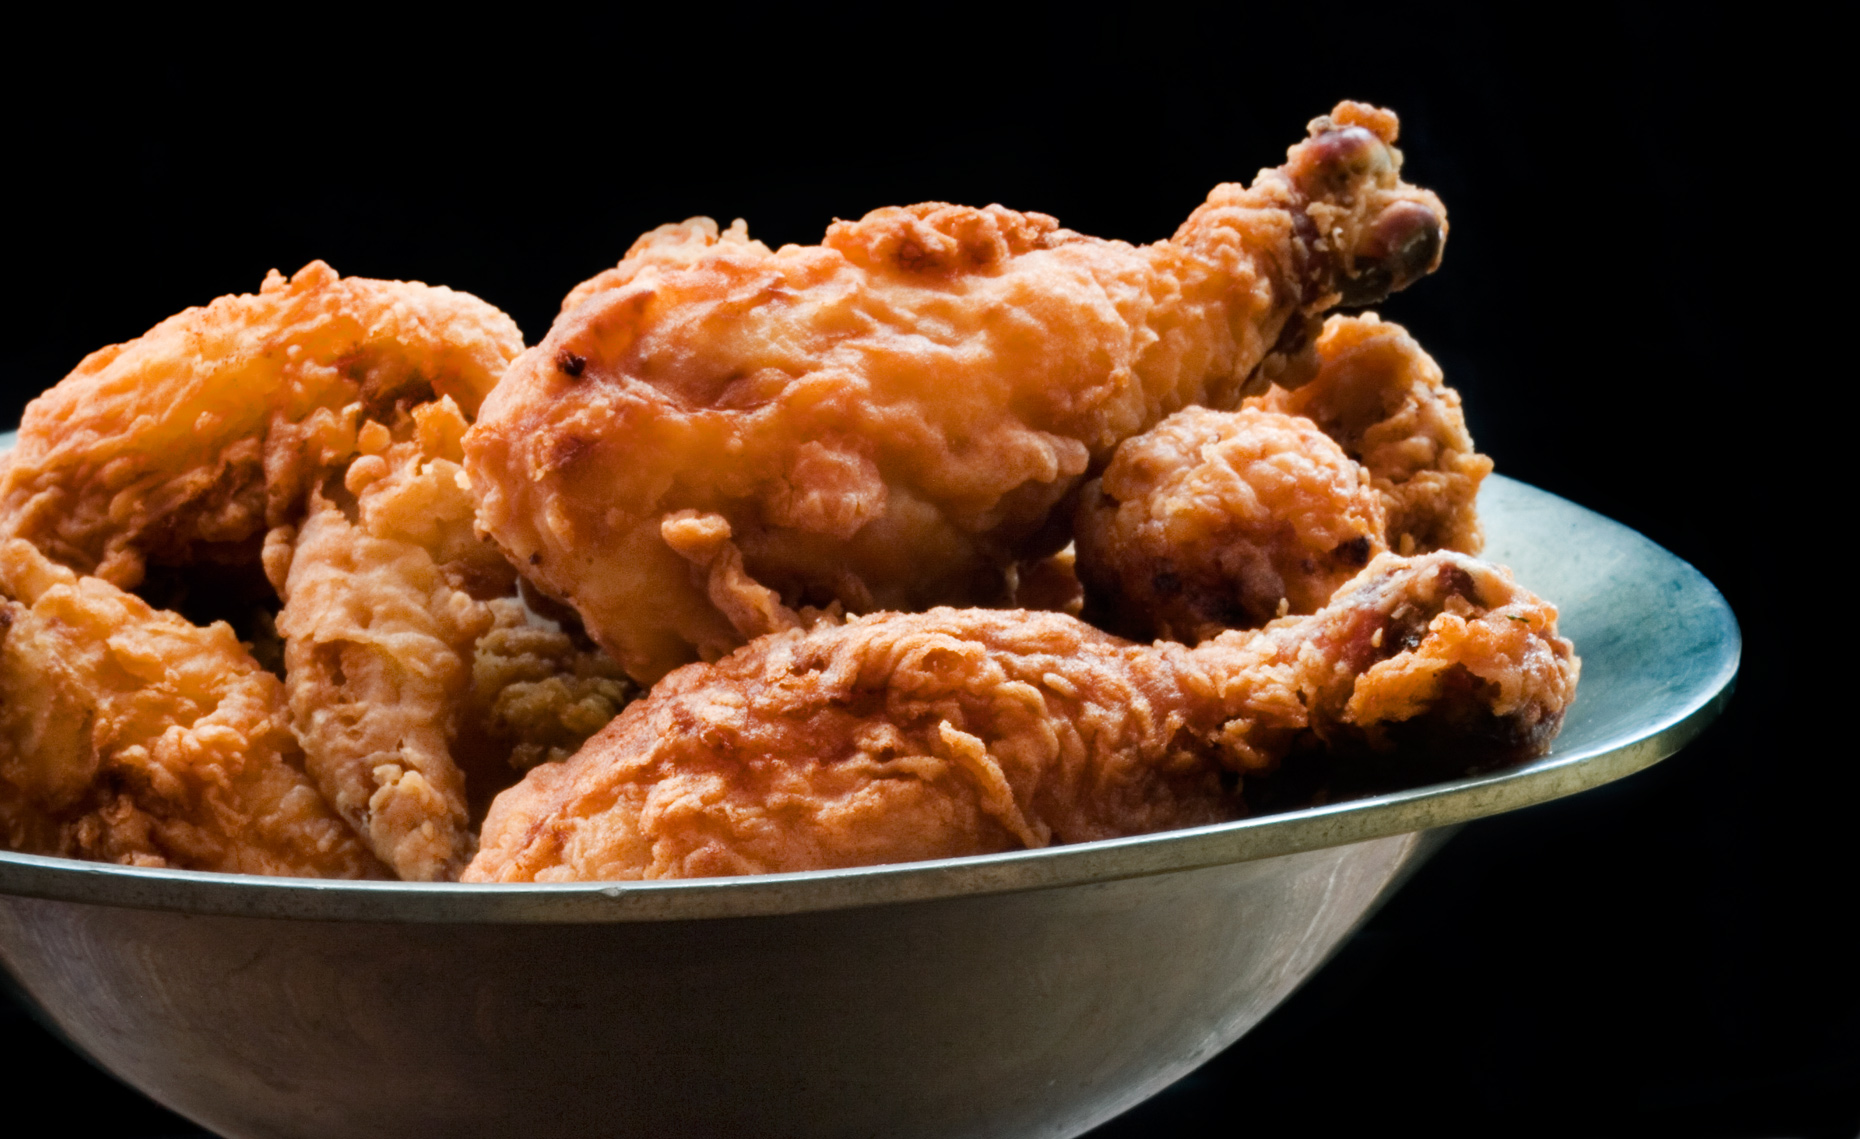 san francisco food  photographer, New York, fried chicken